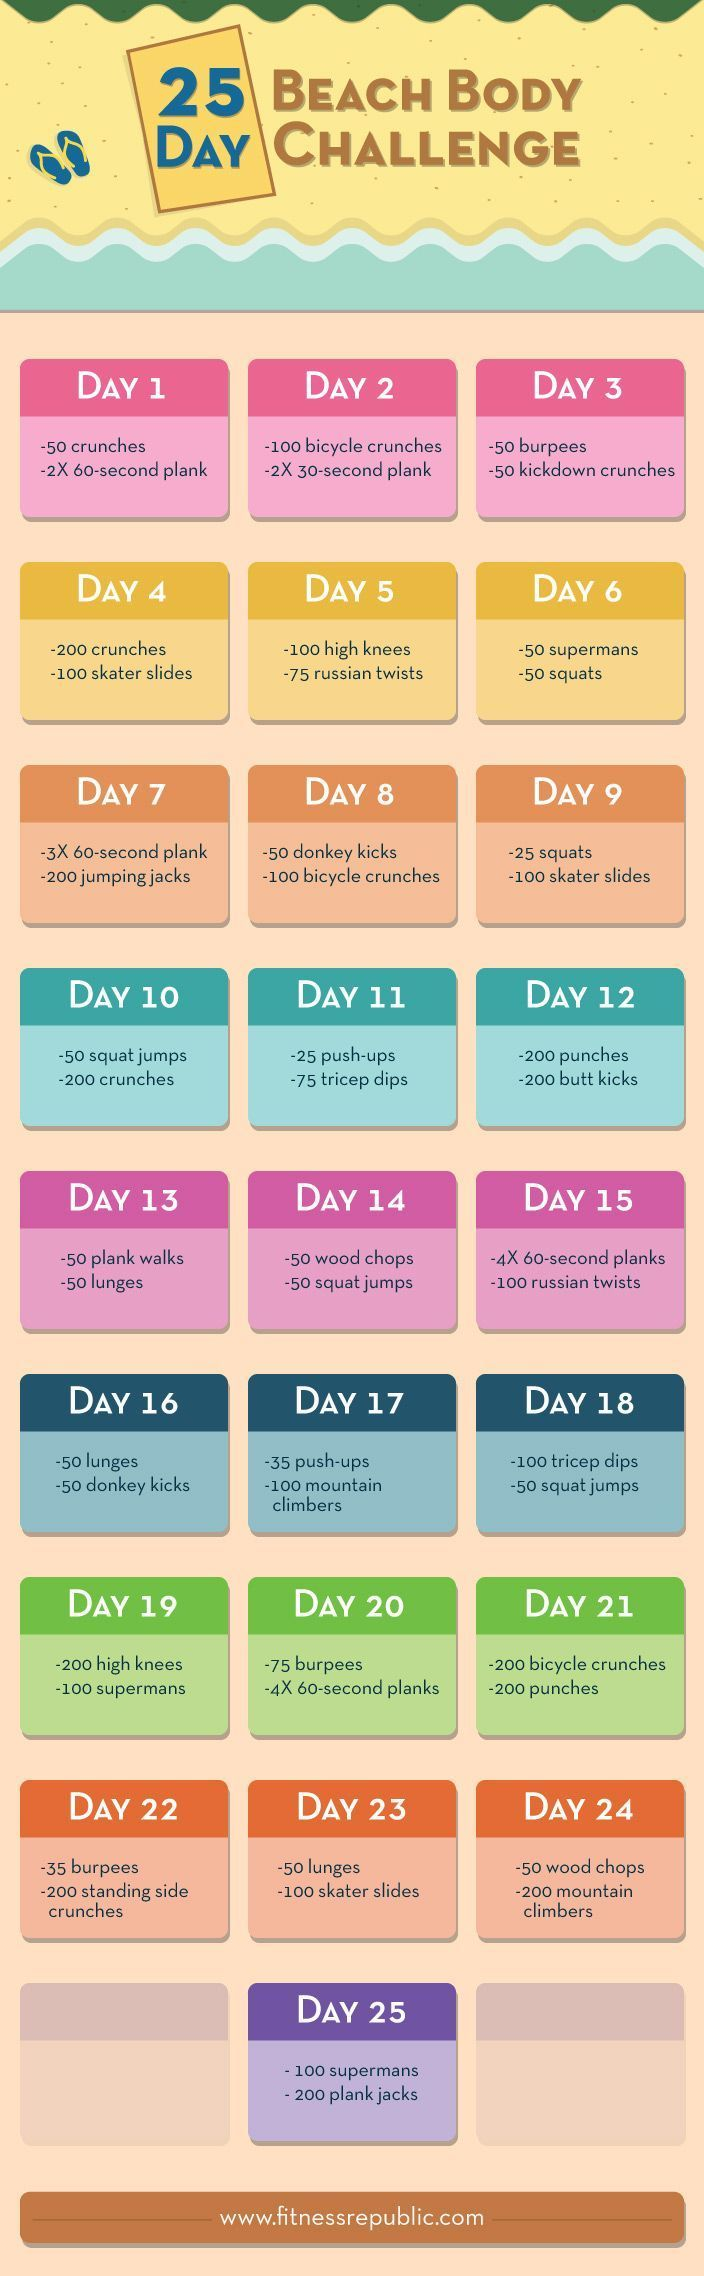 25 Day Beach Body Challenge. Though beach season has ended, is still important to not give up all your hard work you've done this far. Anyone wanna try it?